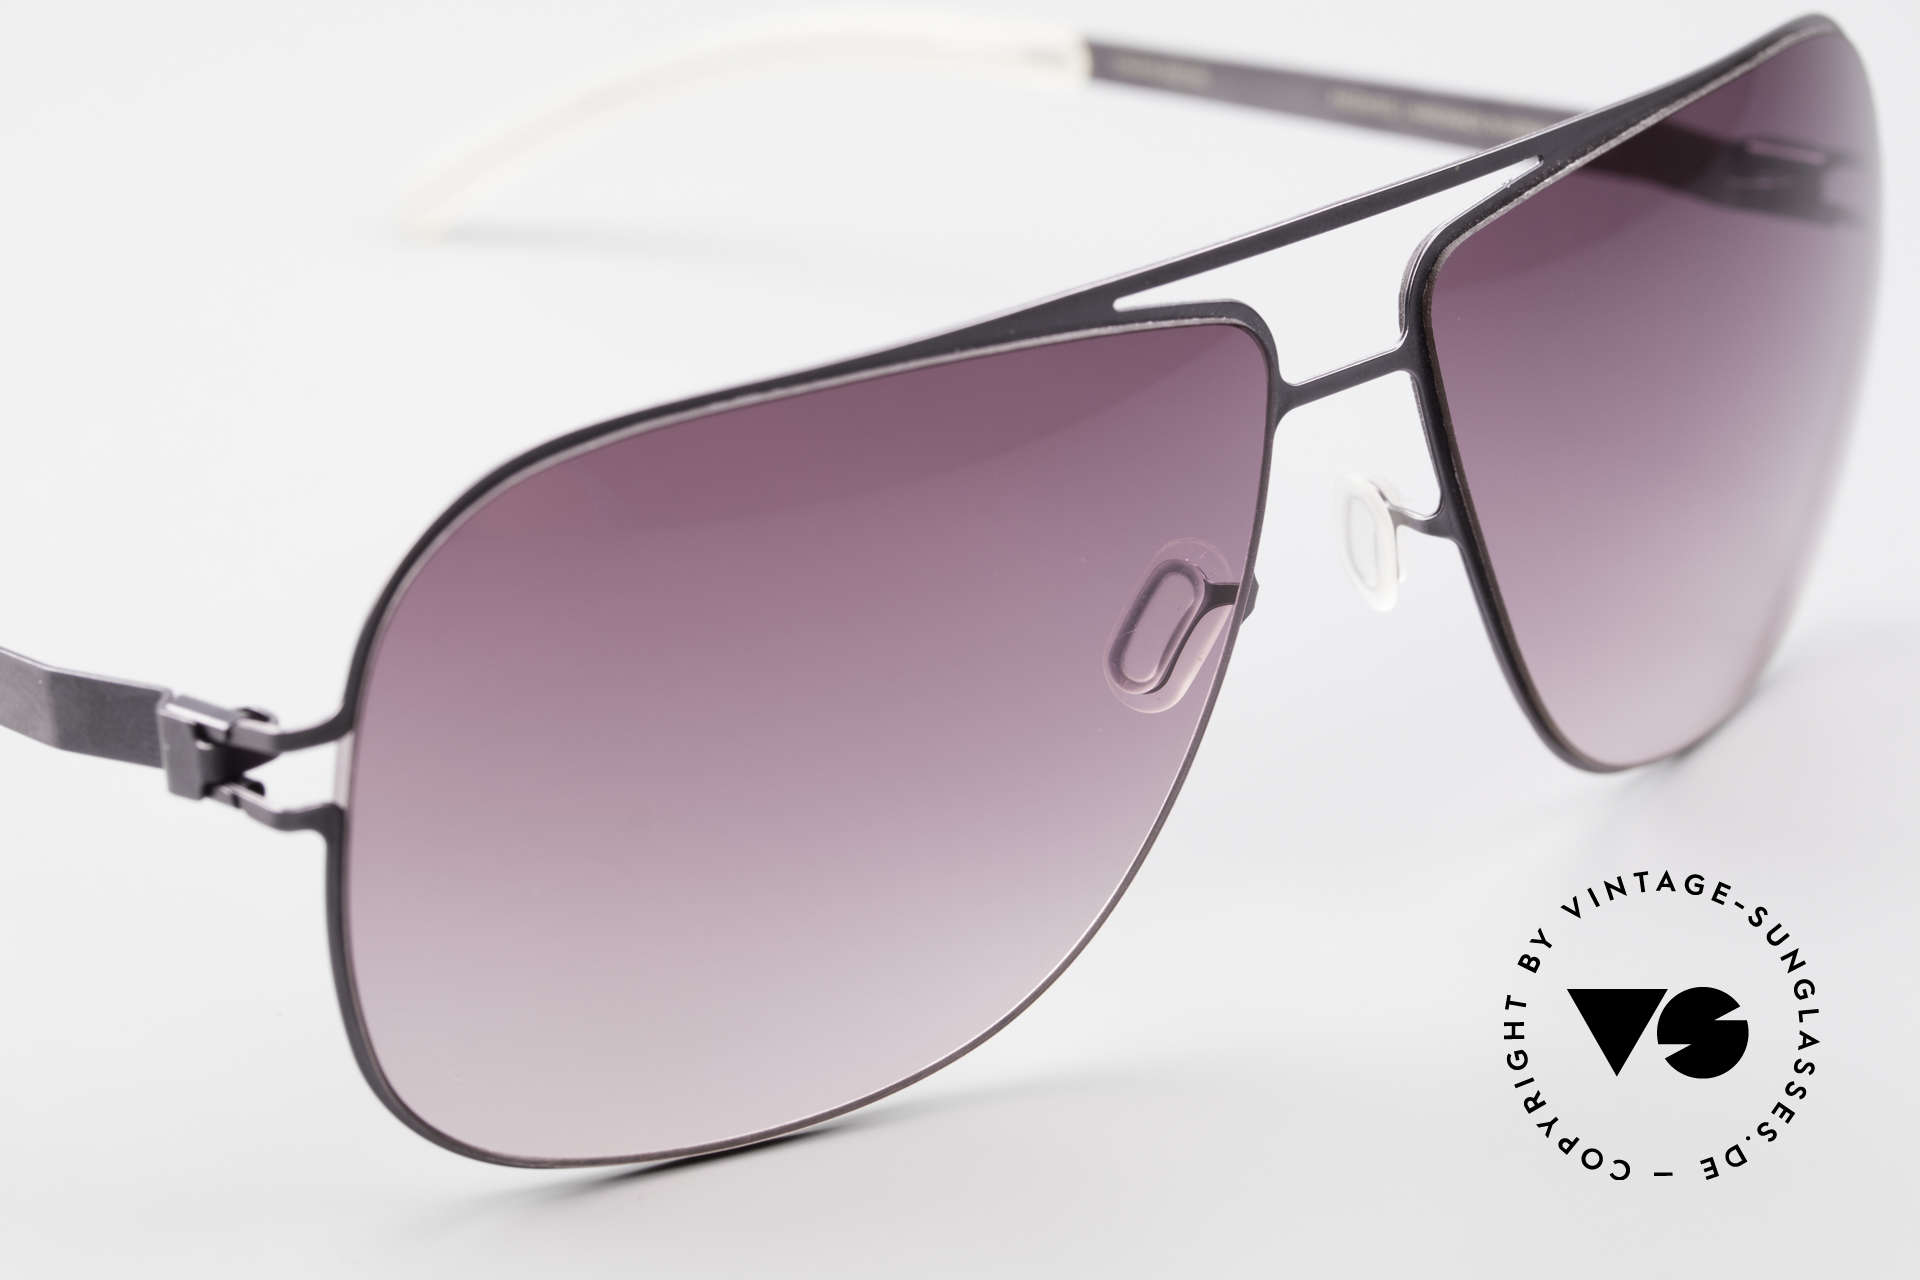 Mykita Rolf Angelina Jolie Mykita Shades, top-notch quality, made in Germany (Berlin-Kreuzberg), Made for Men and Women